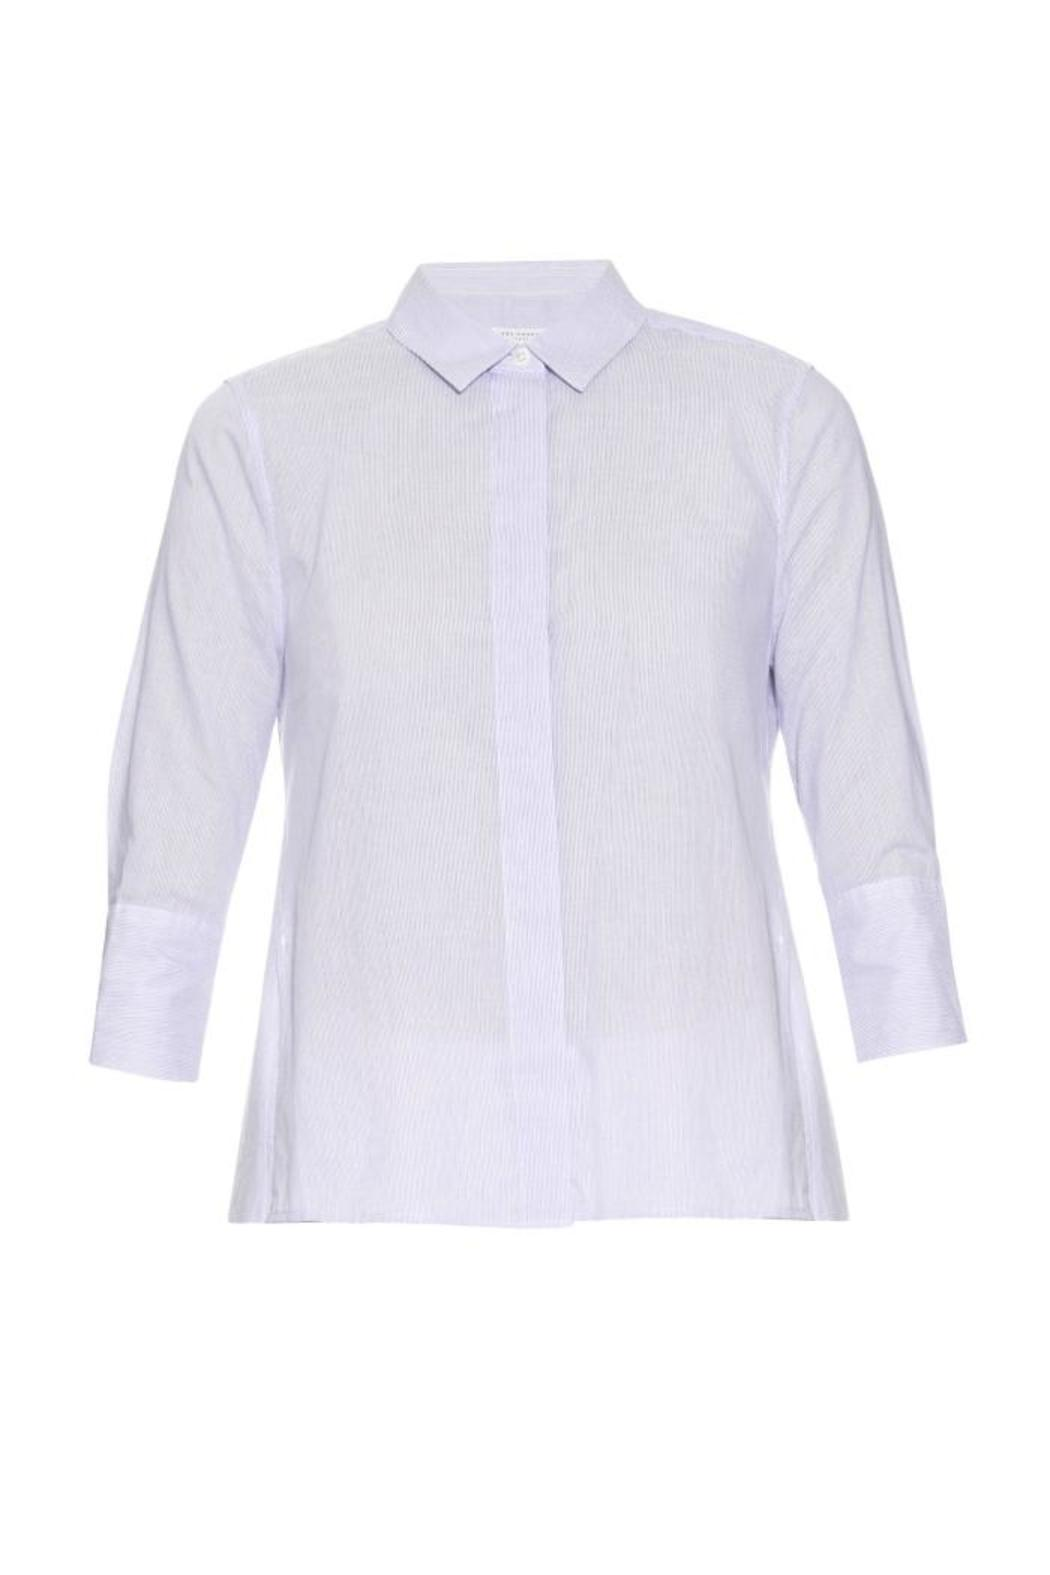 Equipment Esme Cotton Shirt - Front Cropped Image